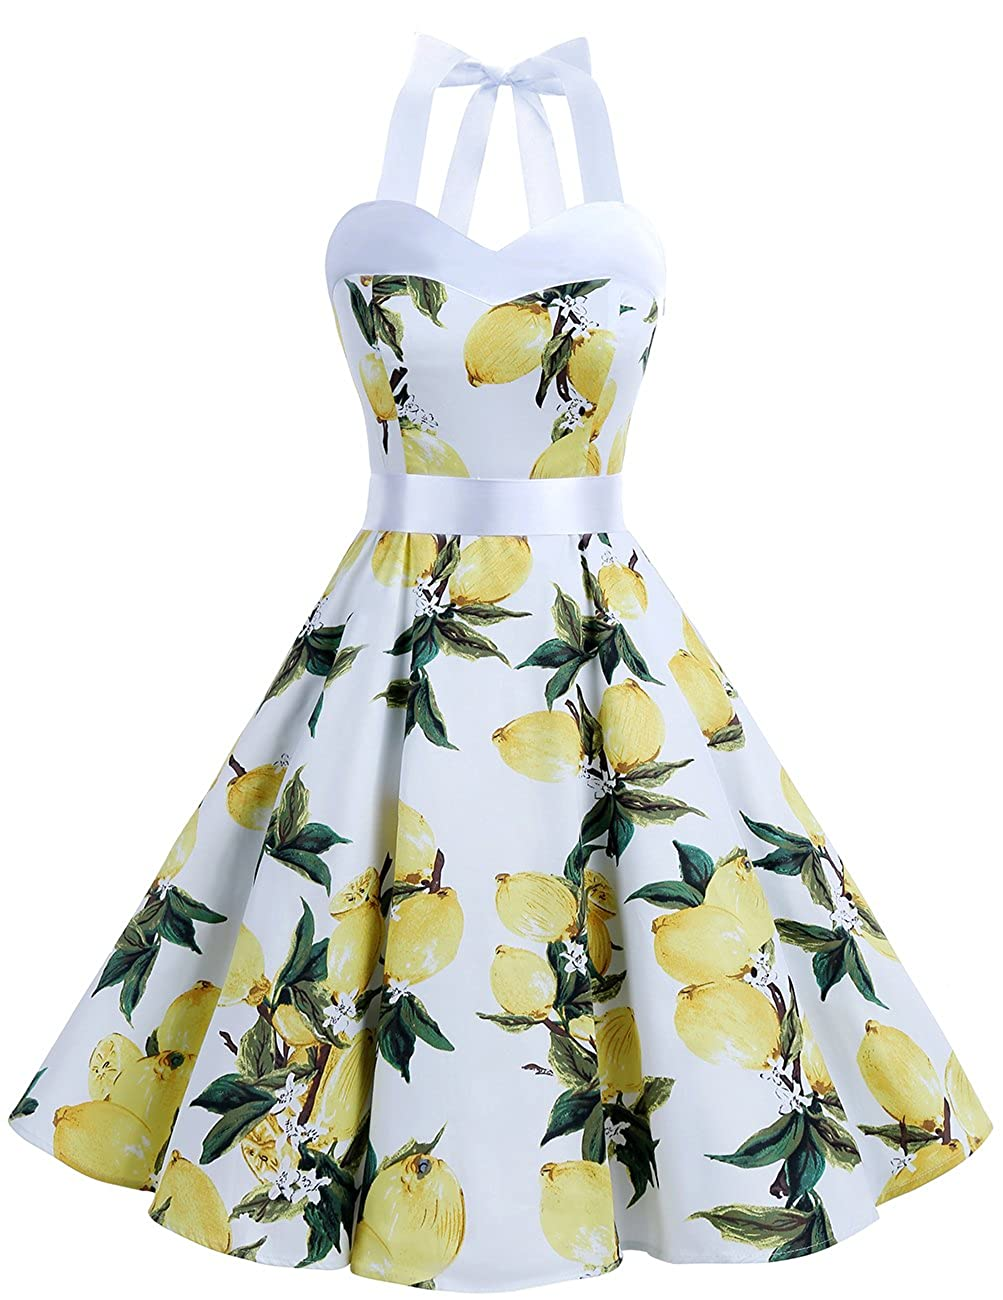 TALLA M. Dresstells® Halter 50s Rockabilly Polka Dots Audrey Dress Retro Cocktail Dress Lemon M